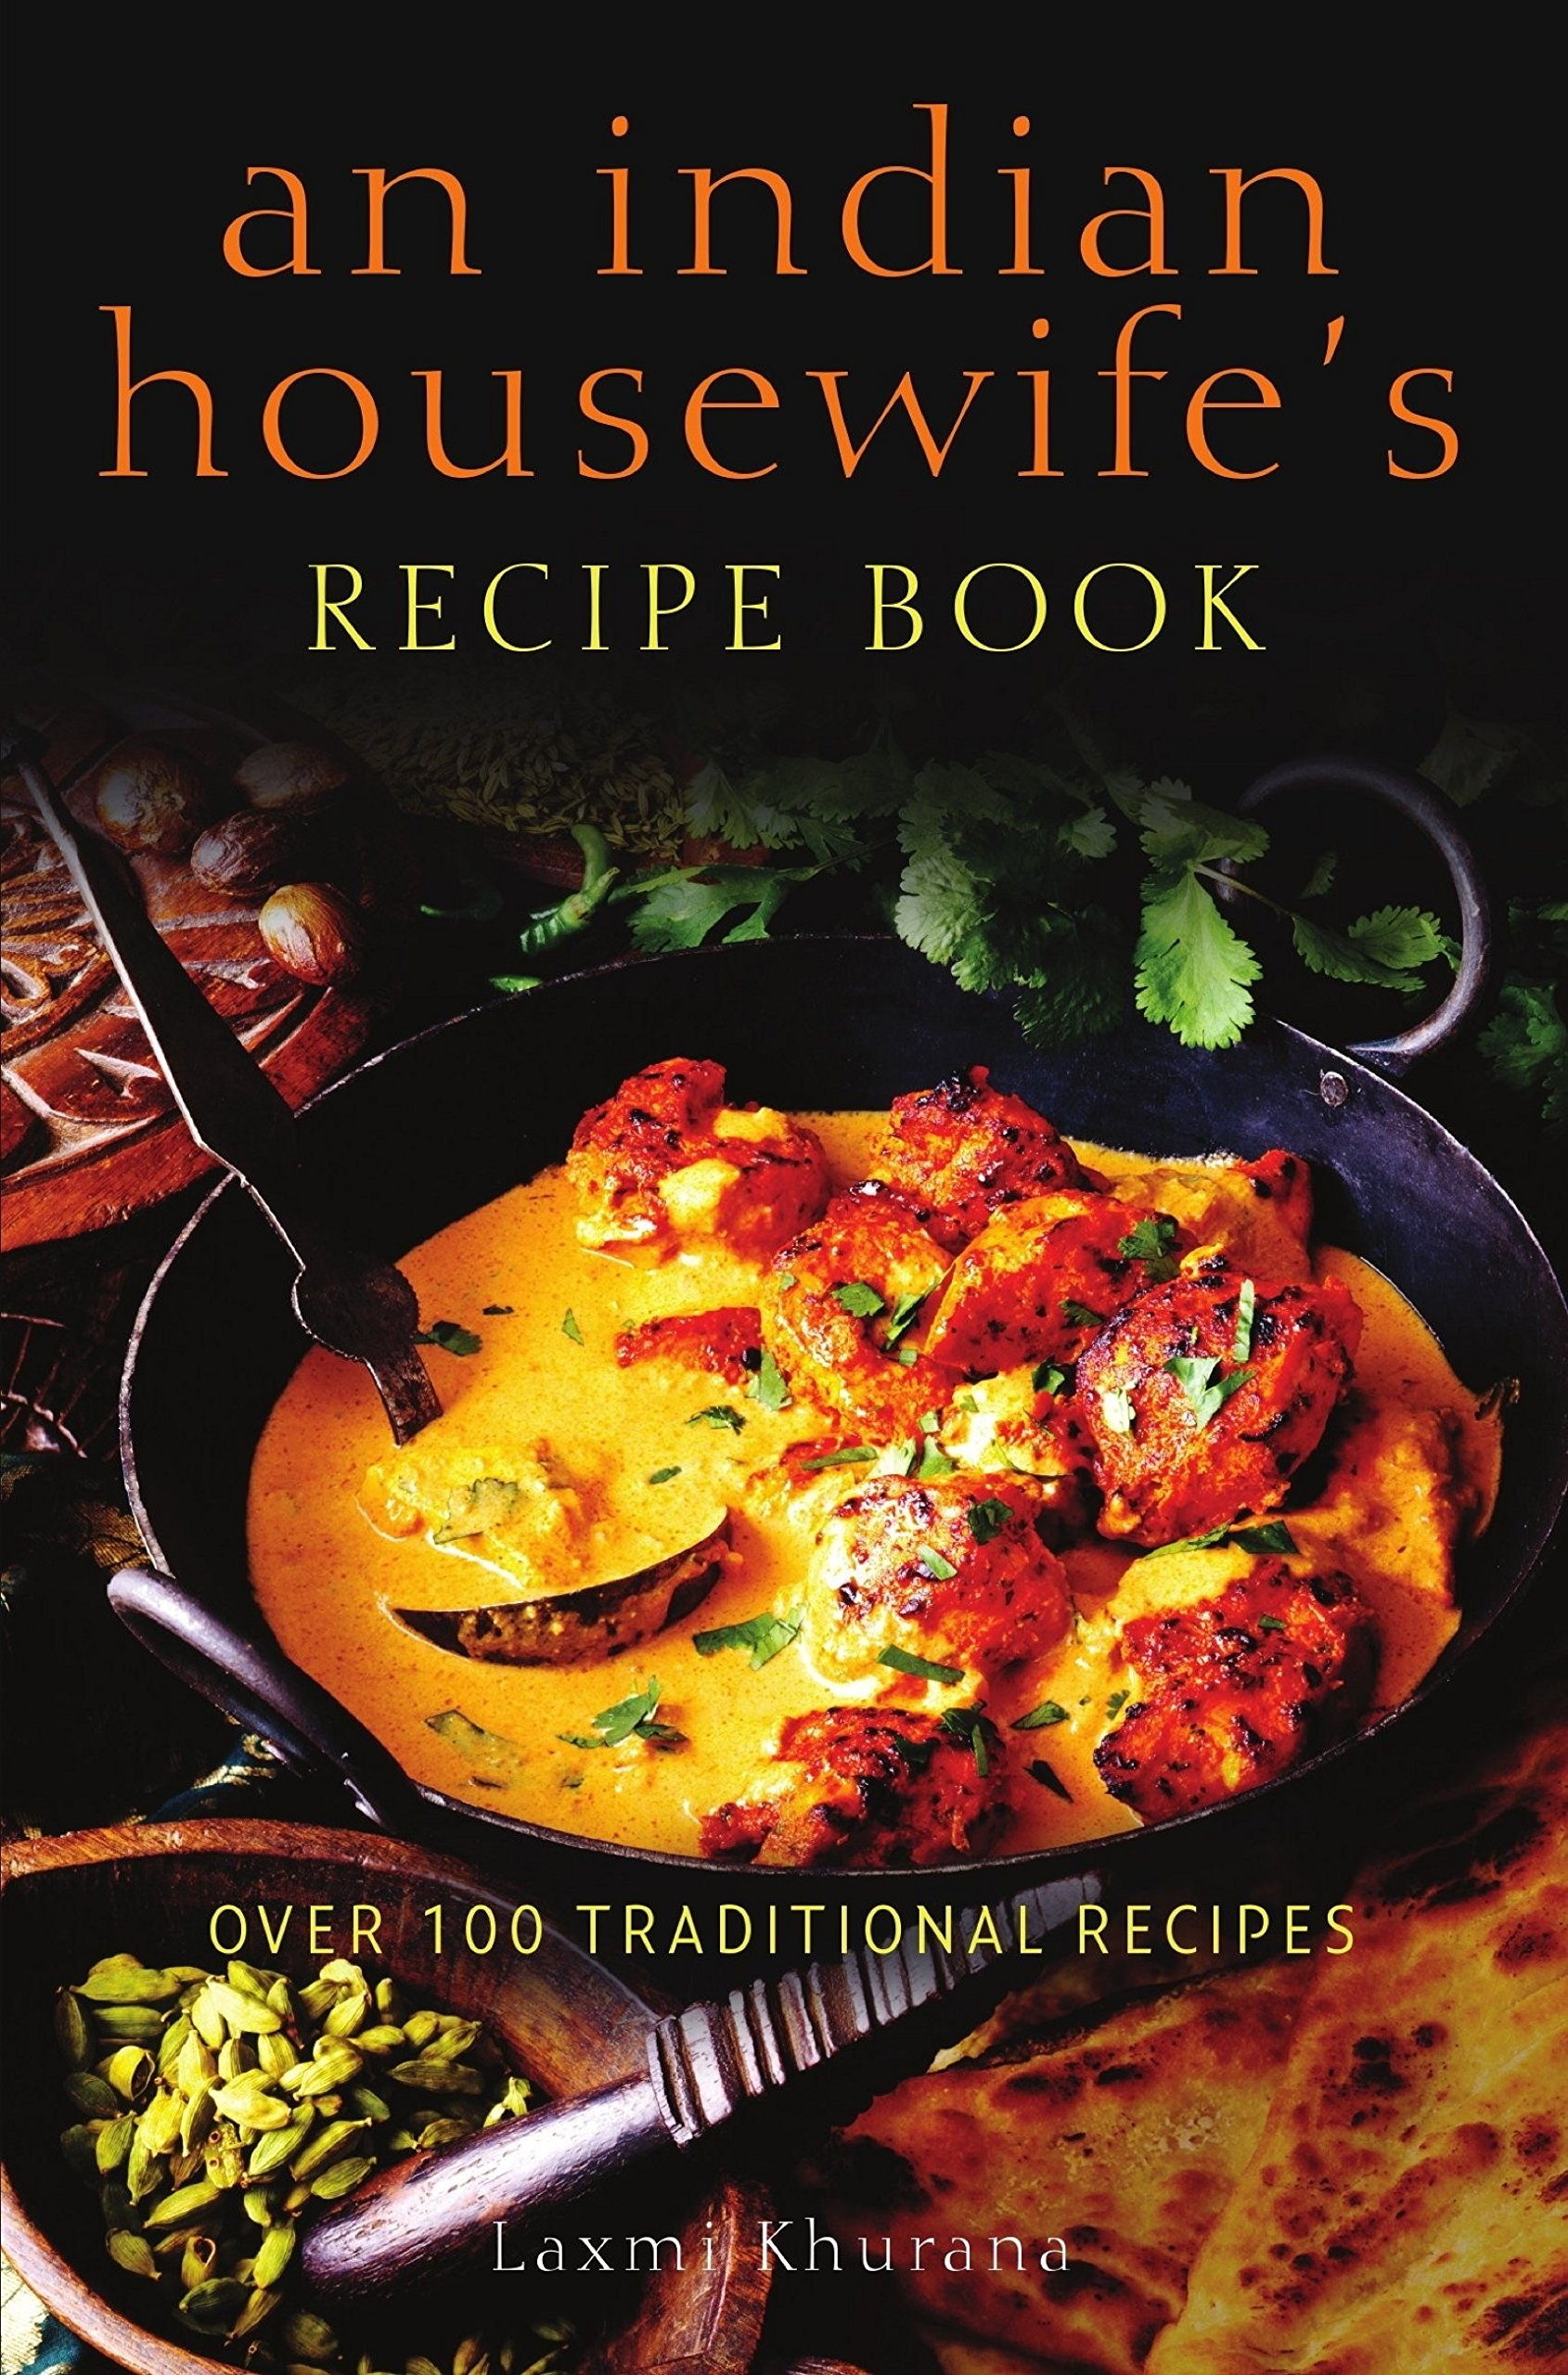 An Indian Housewife's Recipe Book  Over 100 Traditional Recipes  English Edition